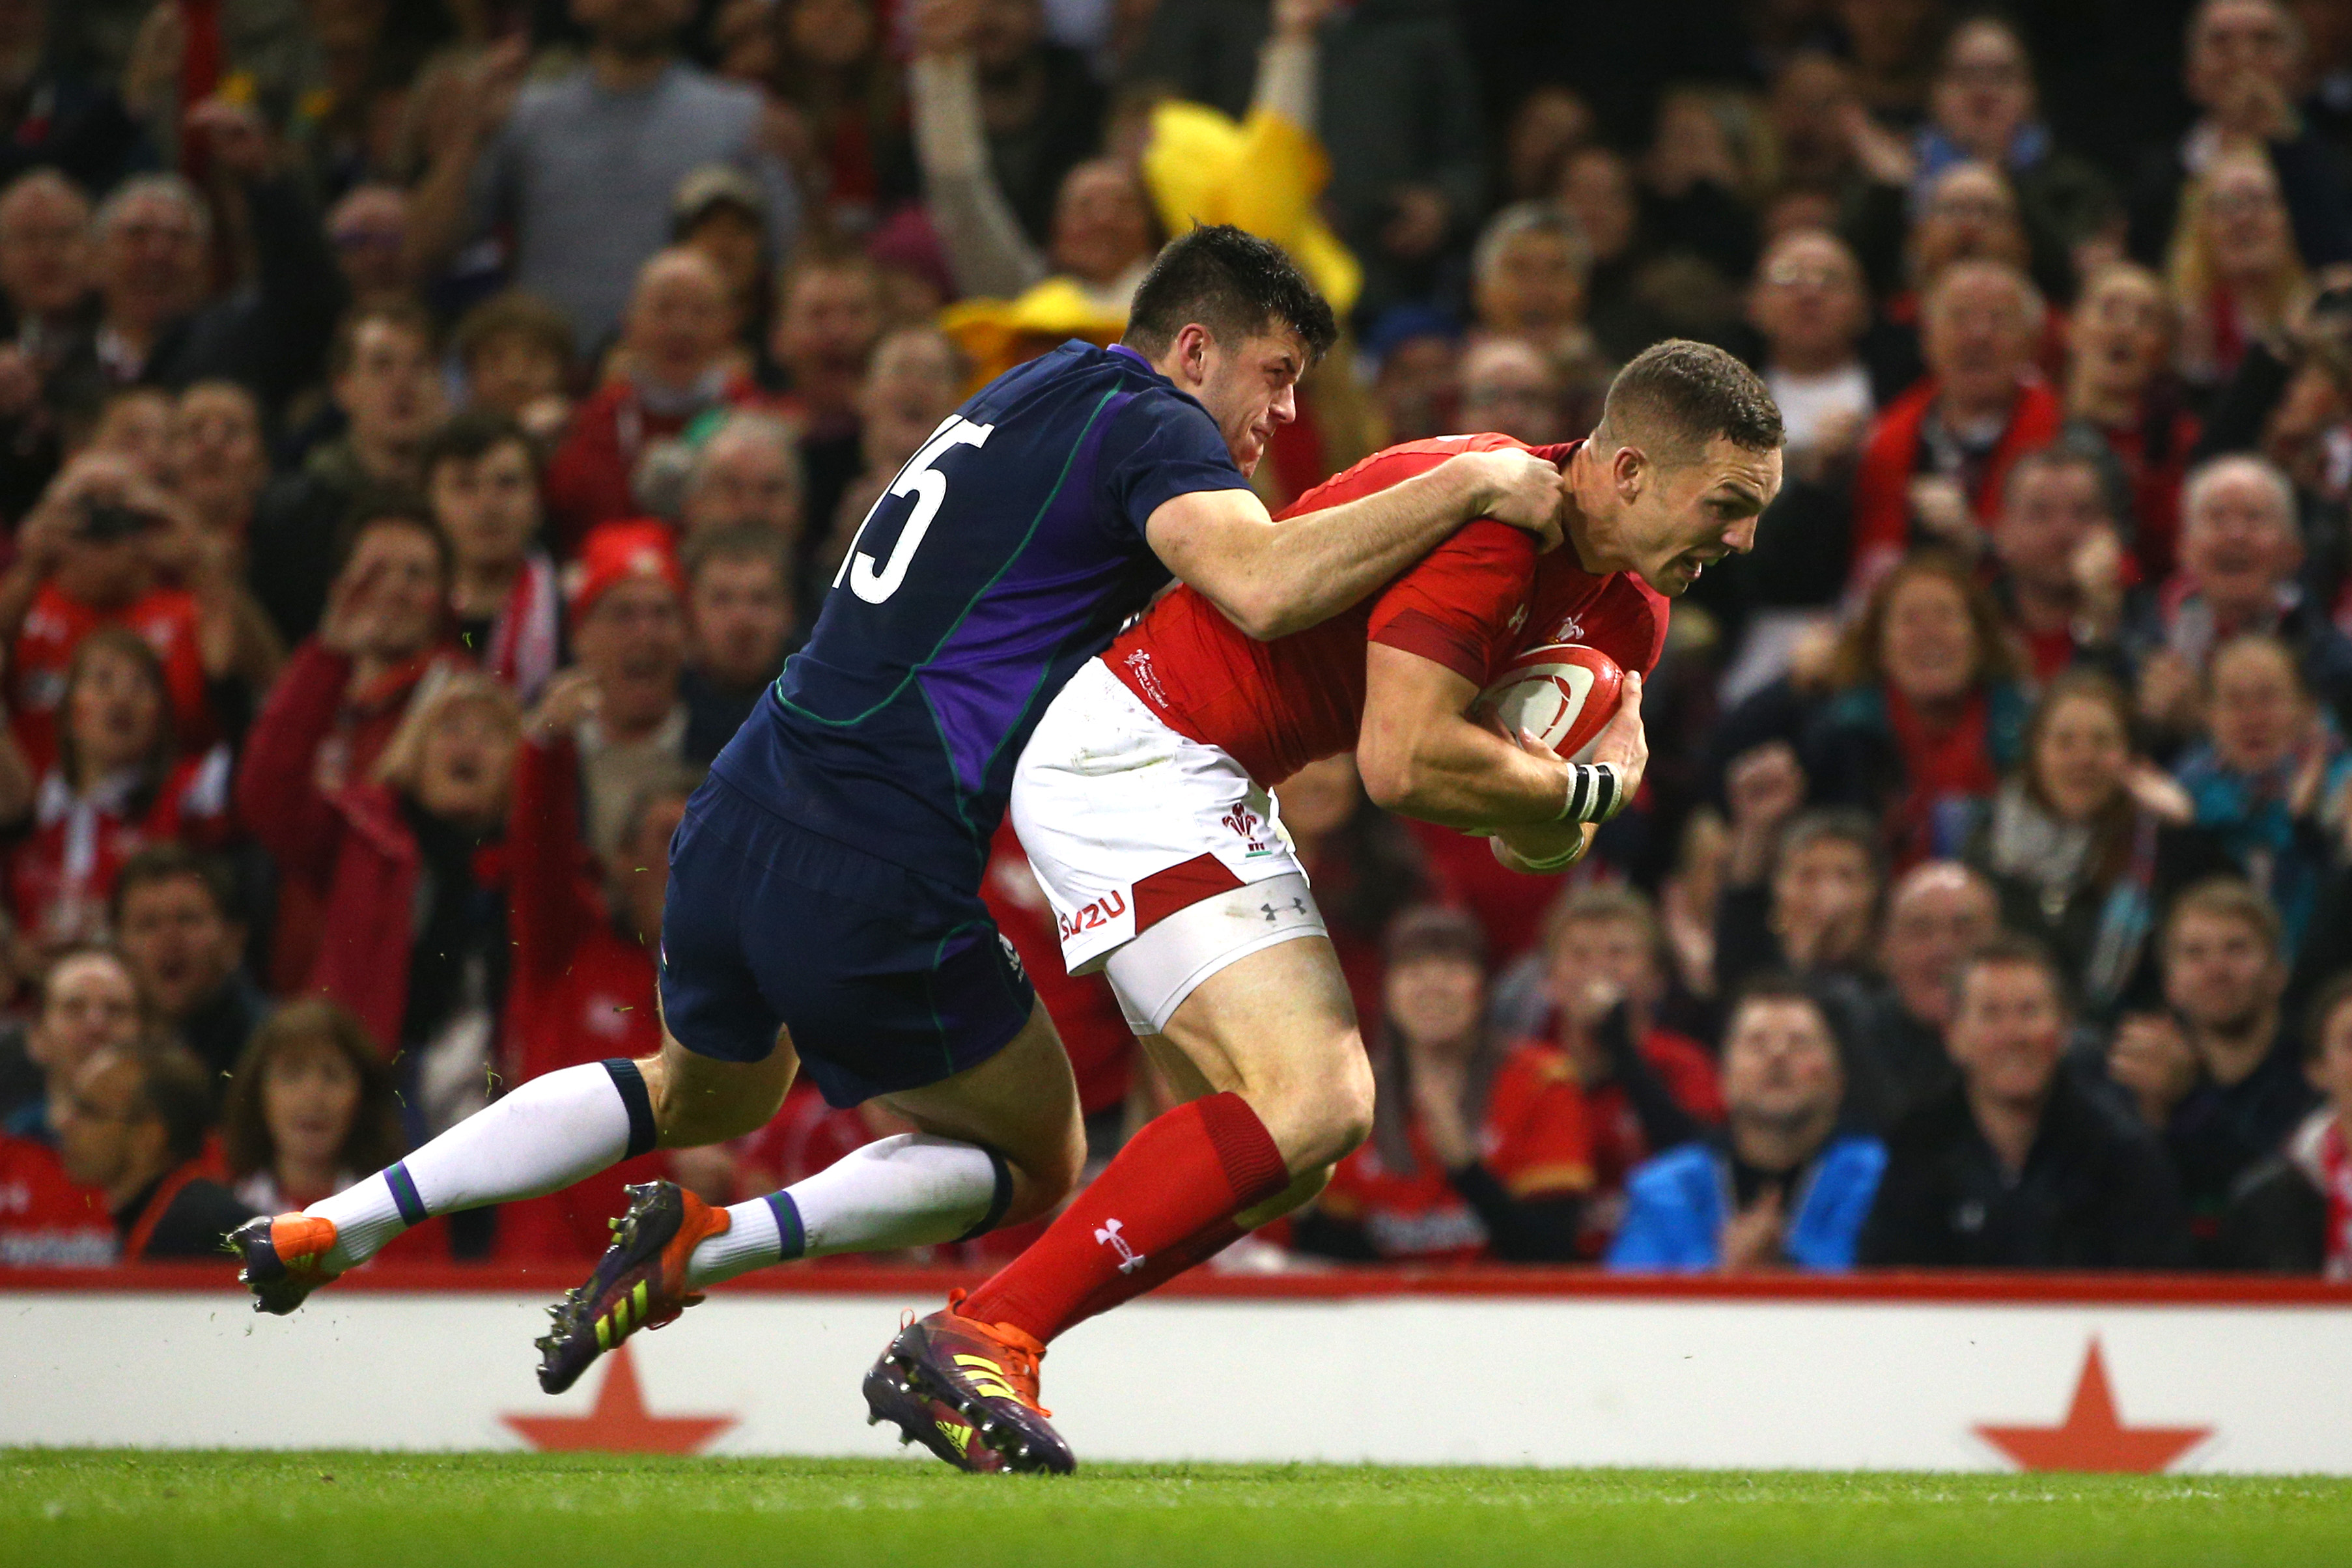 George North goes through for his side's first try despite Blair Kinghorn's tackle.